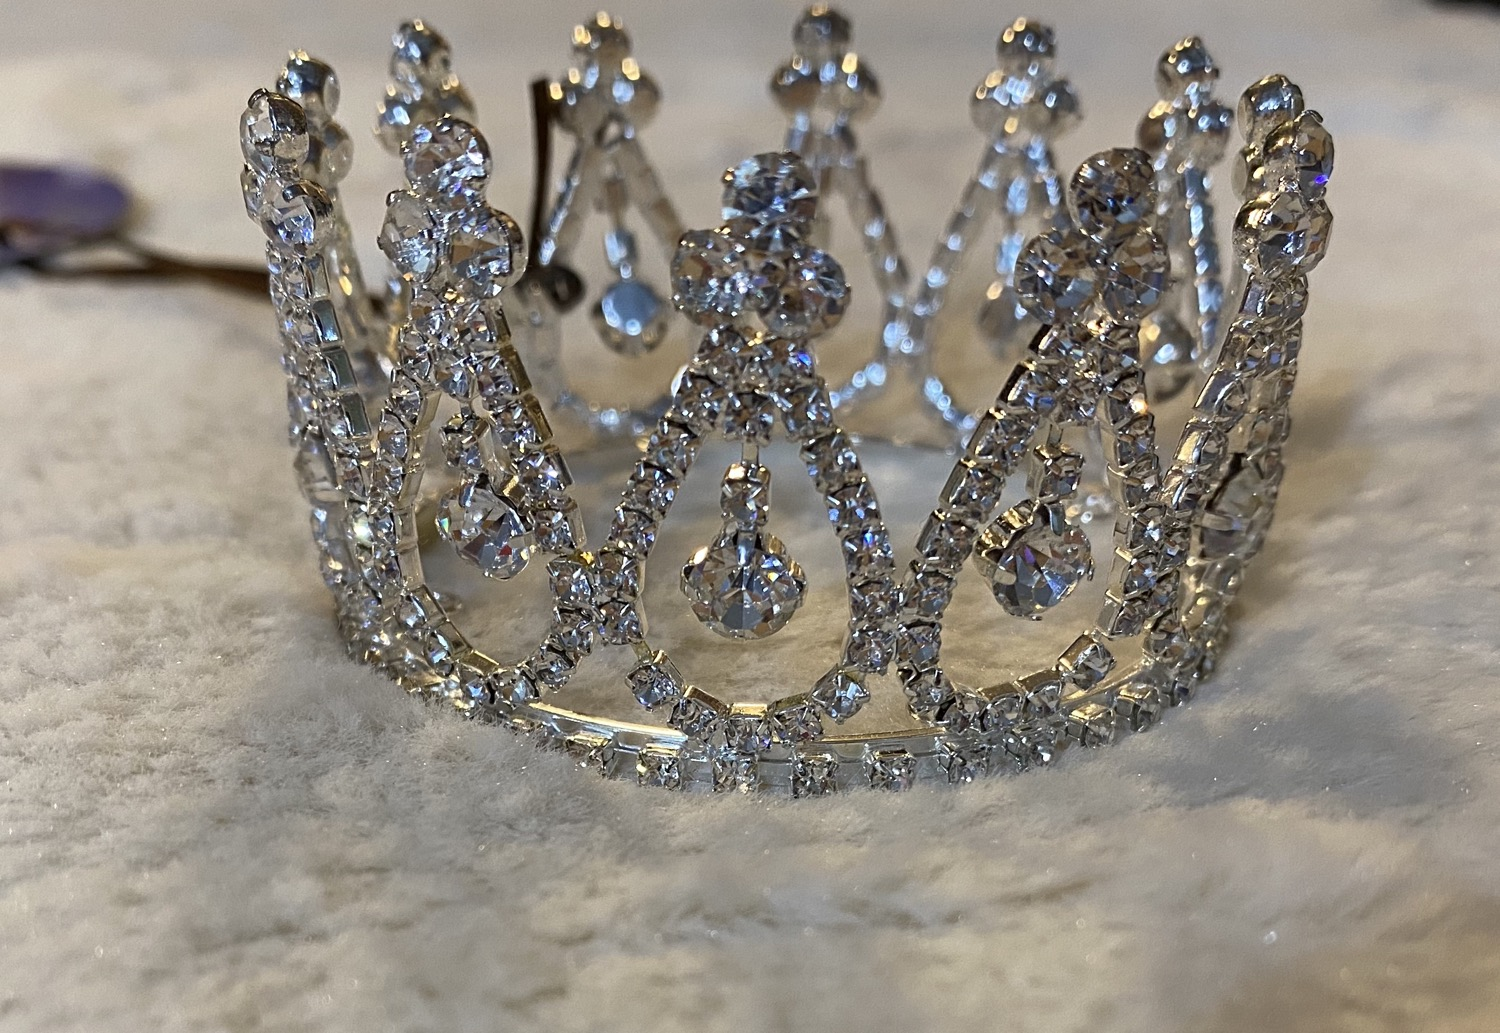 The Jessica Crown